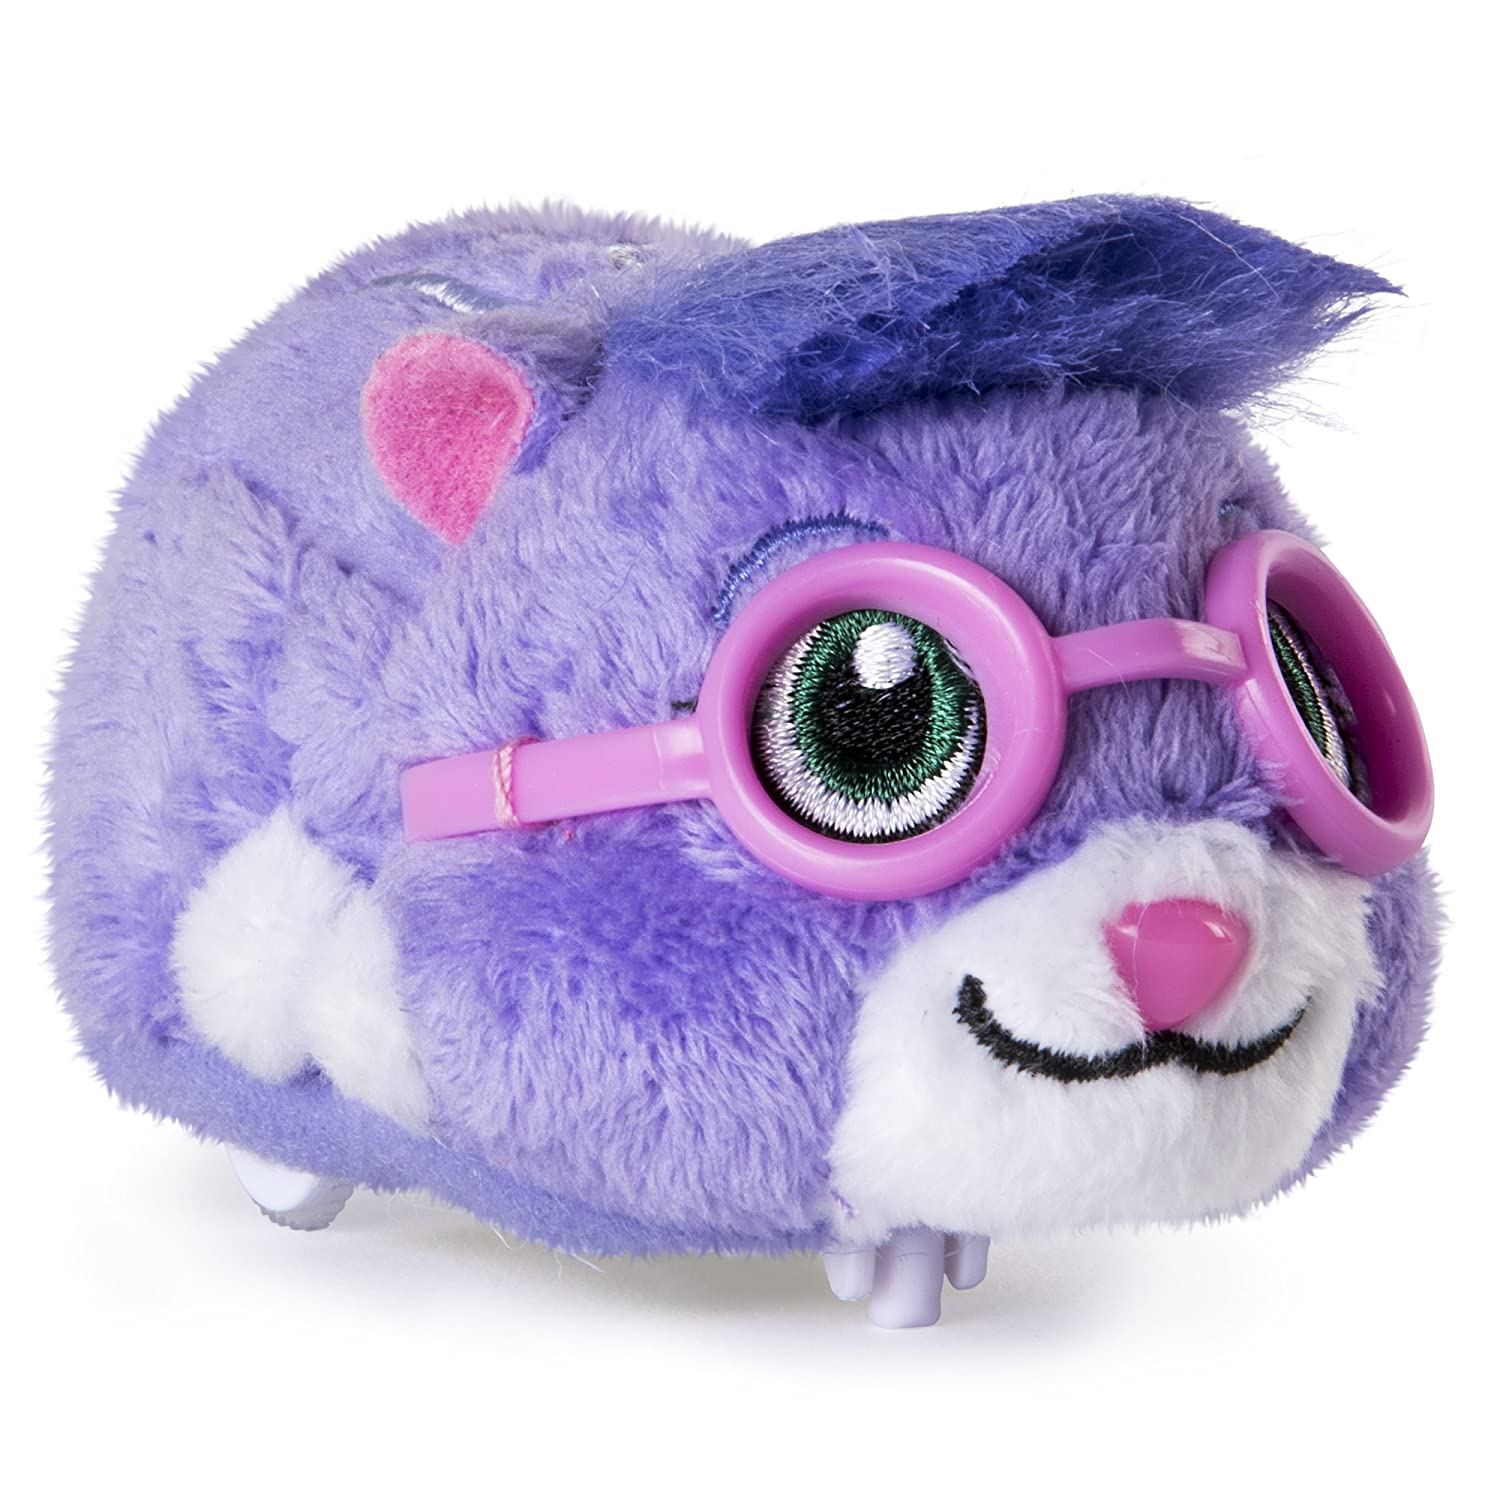 "Zhu Zhu Pets Num Nums Furry 4"" Hamster Toy with Sound and Movement"